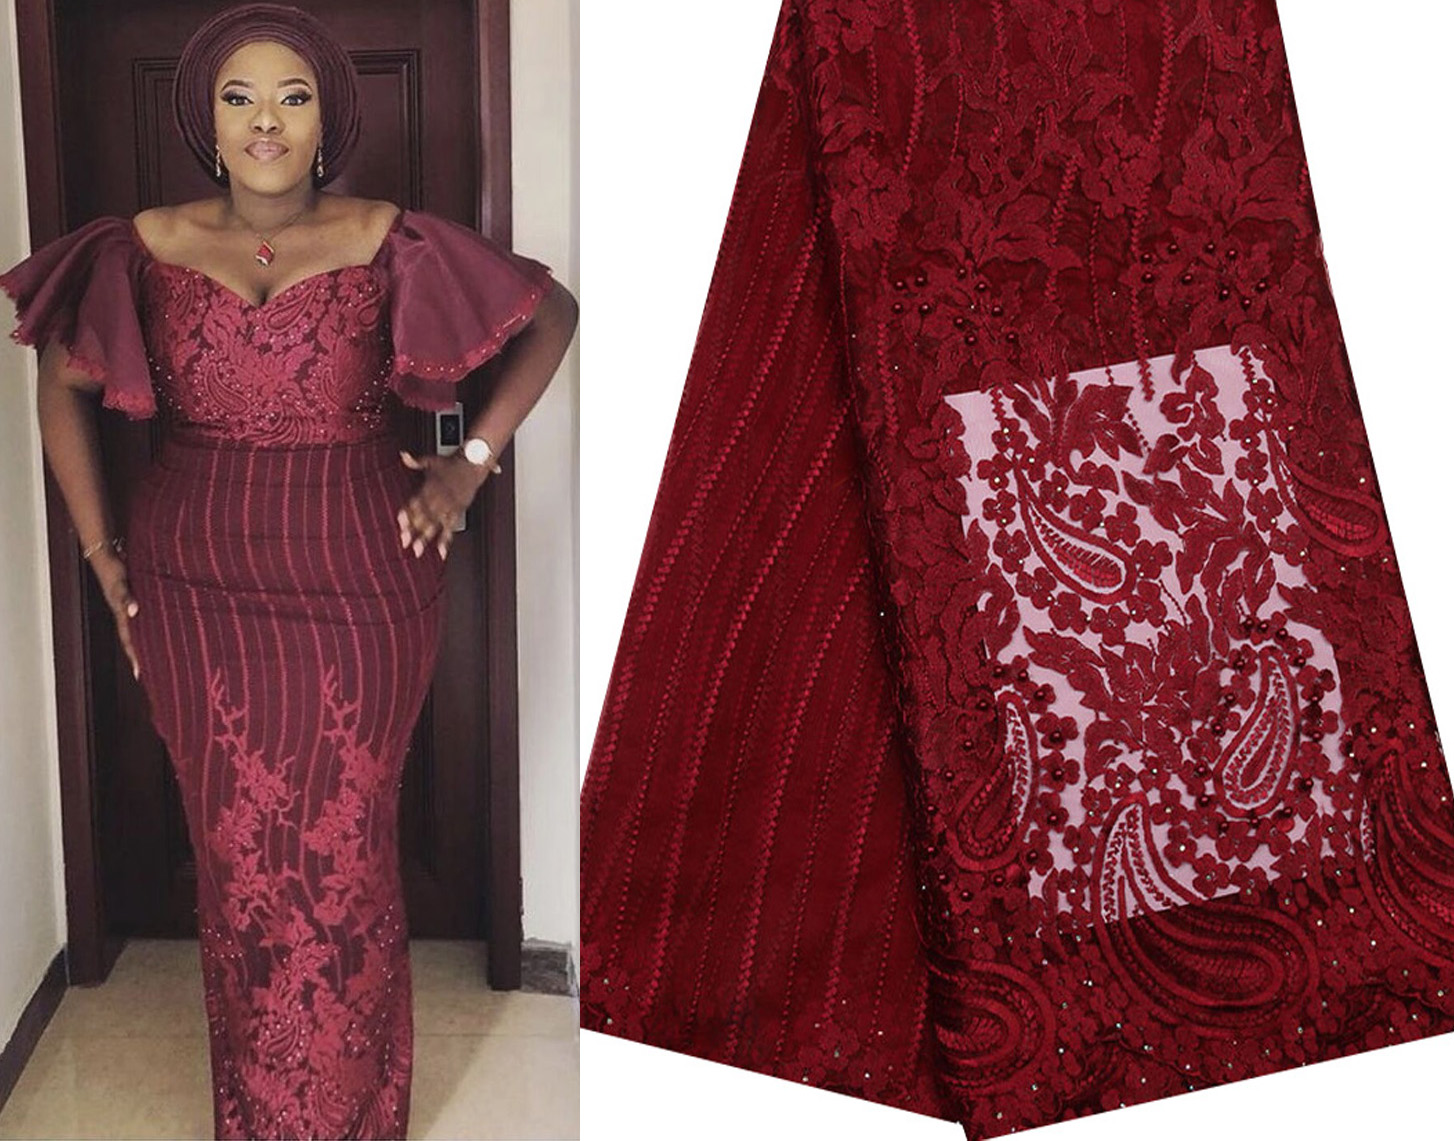 2019 Latest Nigerian Wine Red Laces Fabrics High Quality African Laces Fabric For Wedding Dress French Tulle Lace ZA168